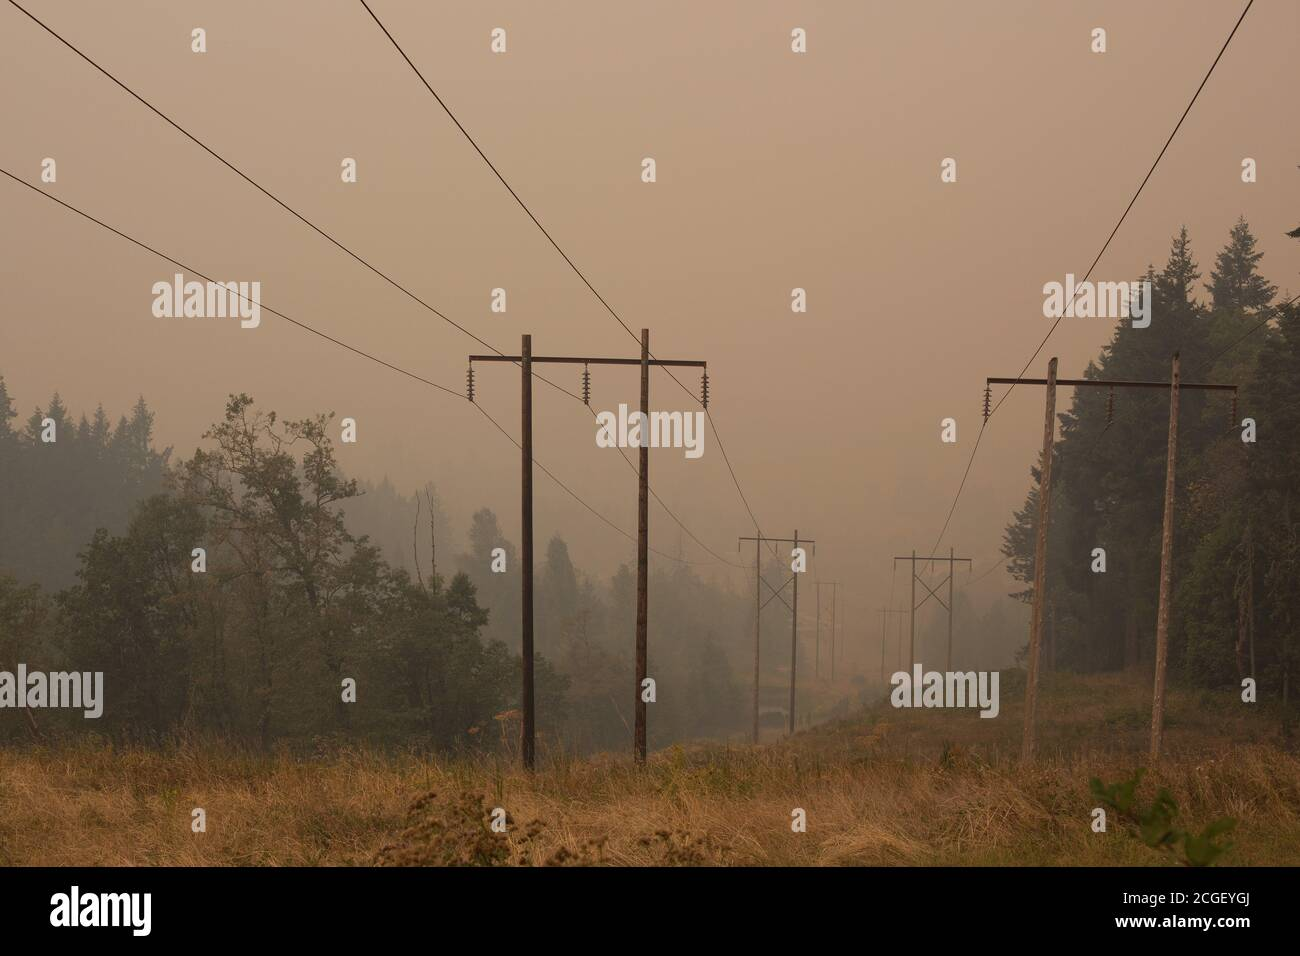 Power lines in thick smoke from nearby wildfires, in Eugene, Oregon, USA. Stock Photo